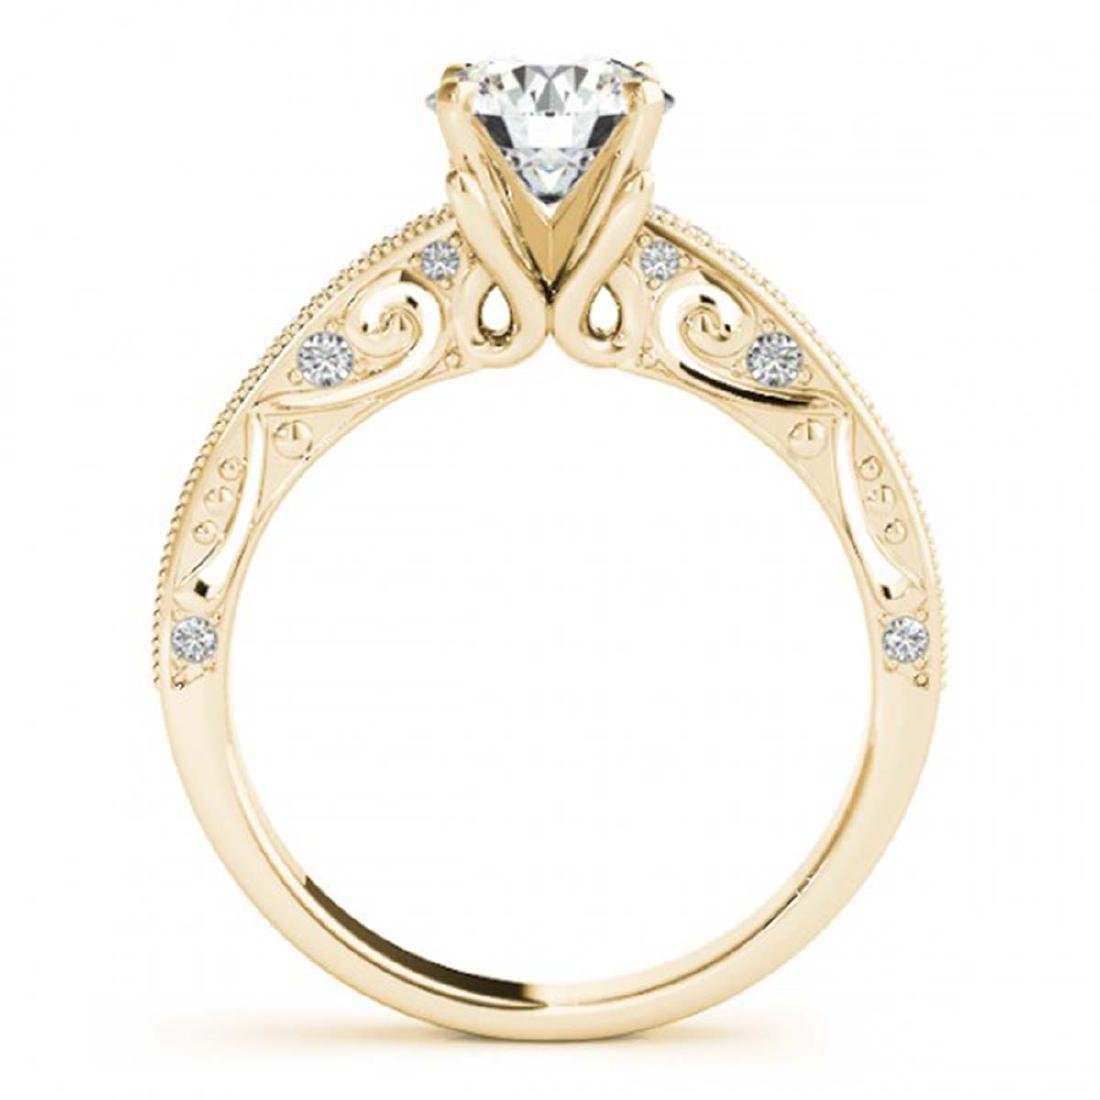 1.25 ctw VS/SI Diamond Solitaire Ring 14K Yellow Gold - - 2